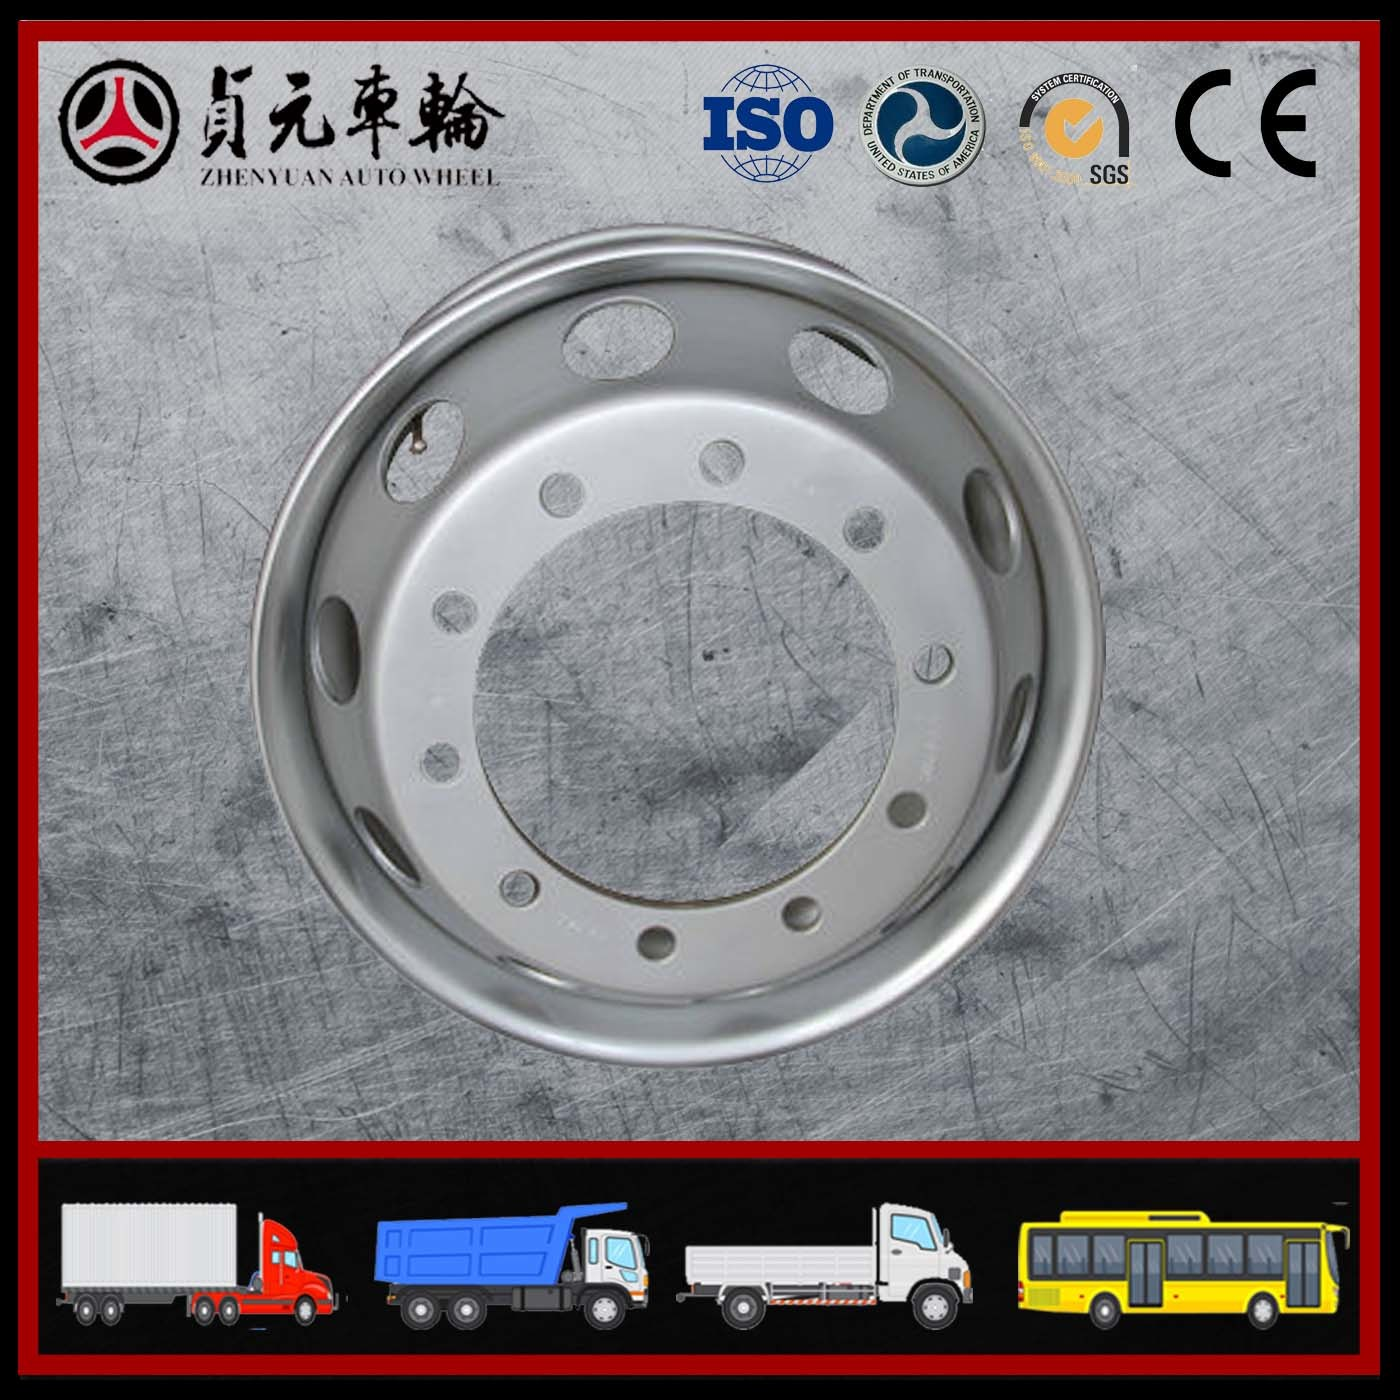 High Quality Trailer Wheel Rims for Zhenyuan Wheel (17.5*6.0)